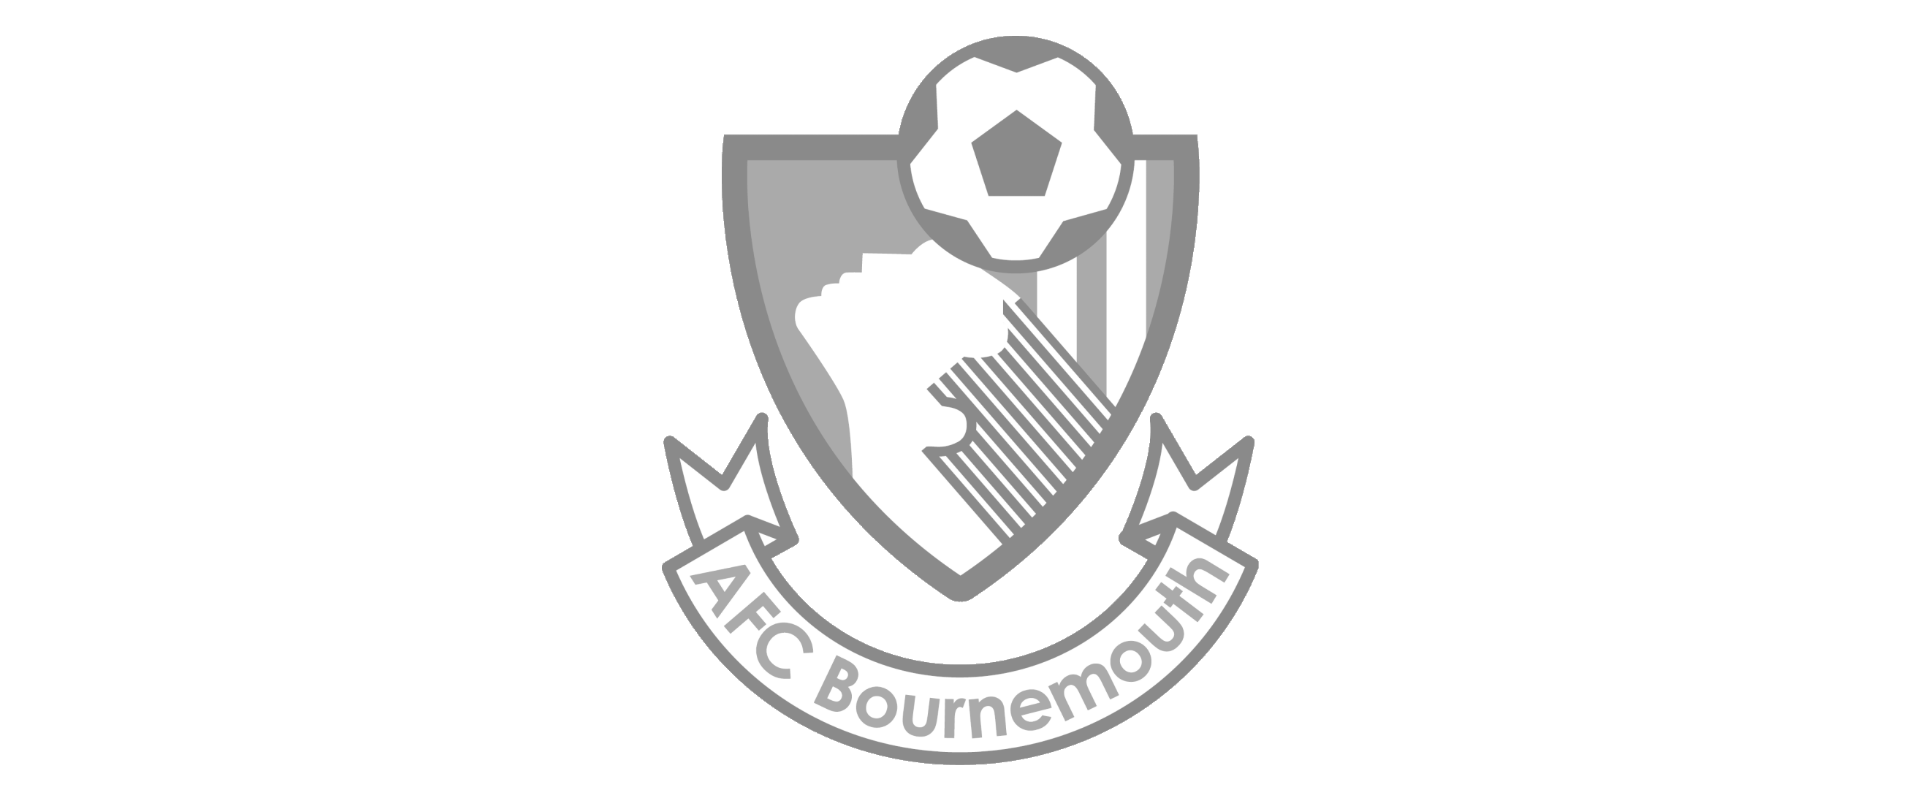 Studio 2 Media have produced for AFC Bournemouth